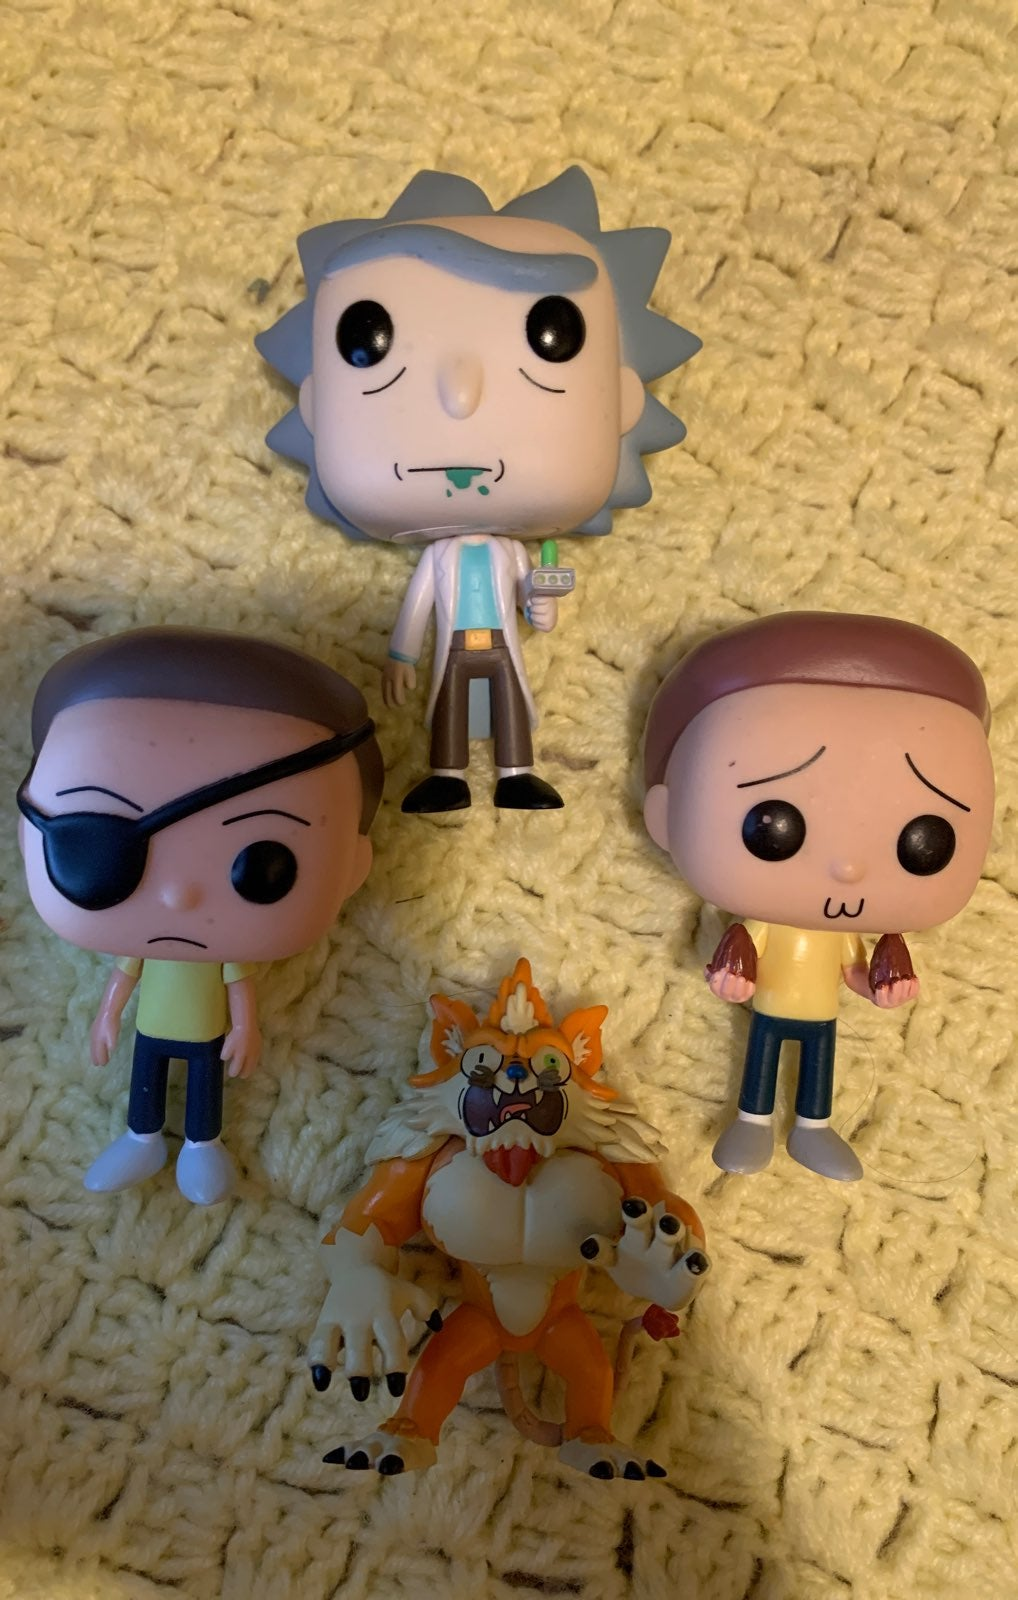 Rick and Morty Funko Pops oob